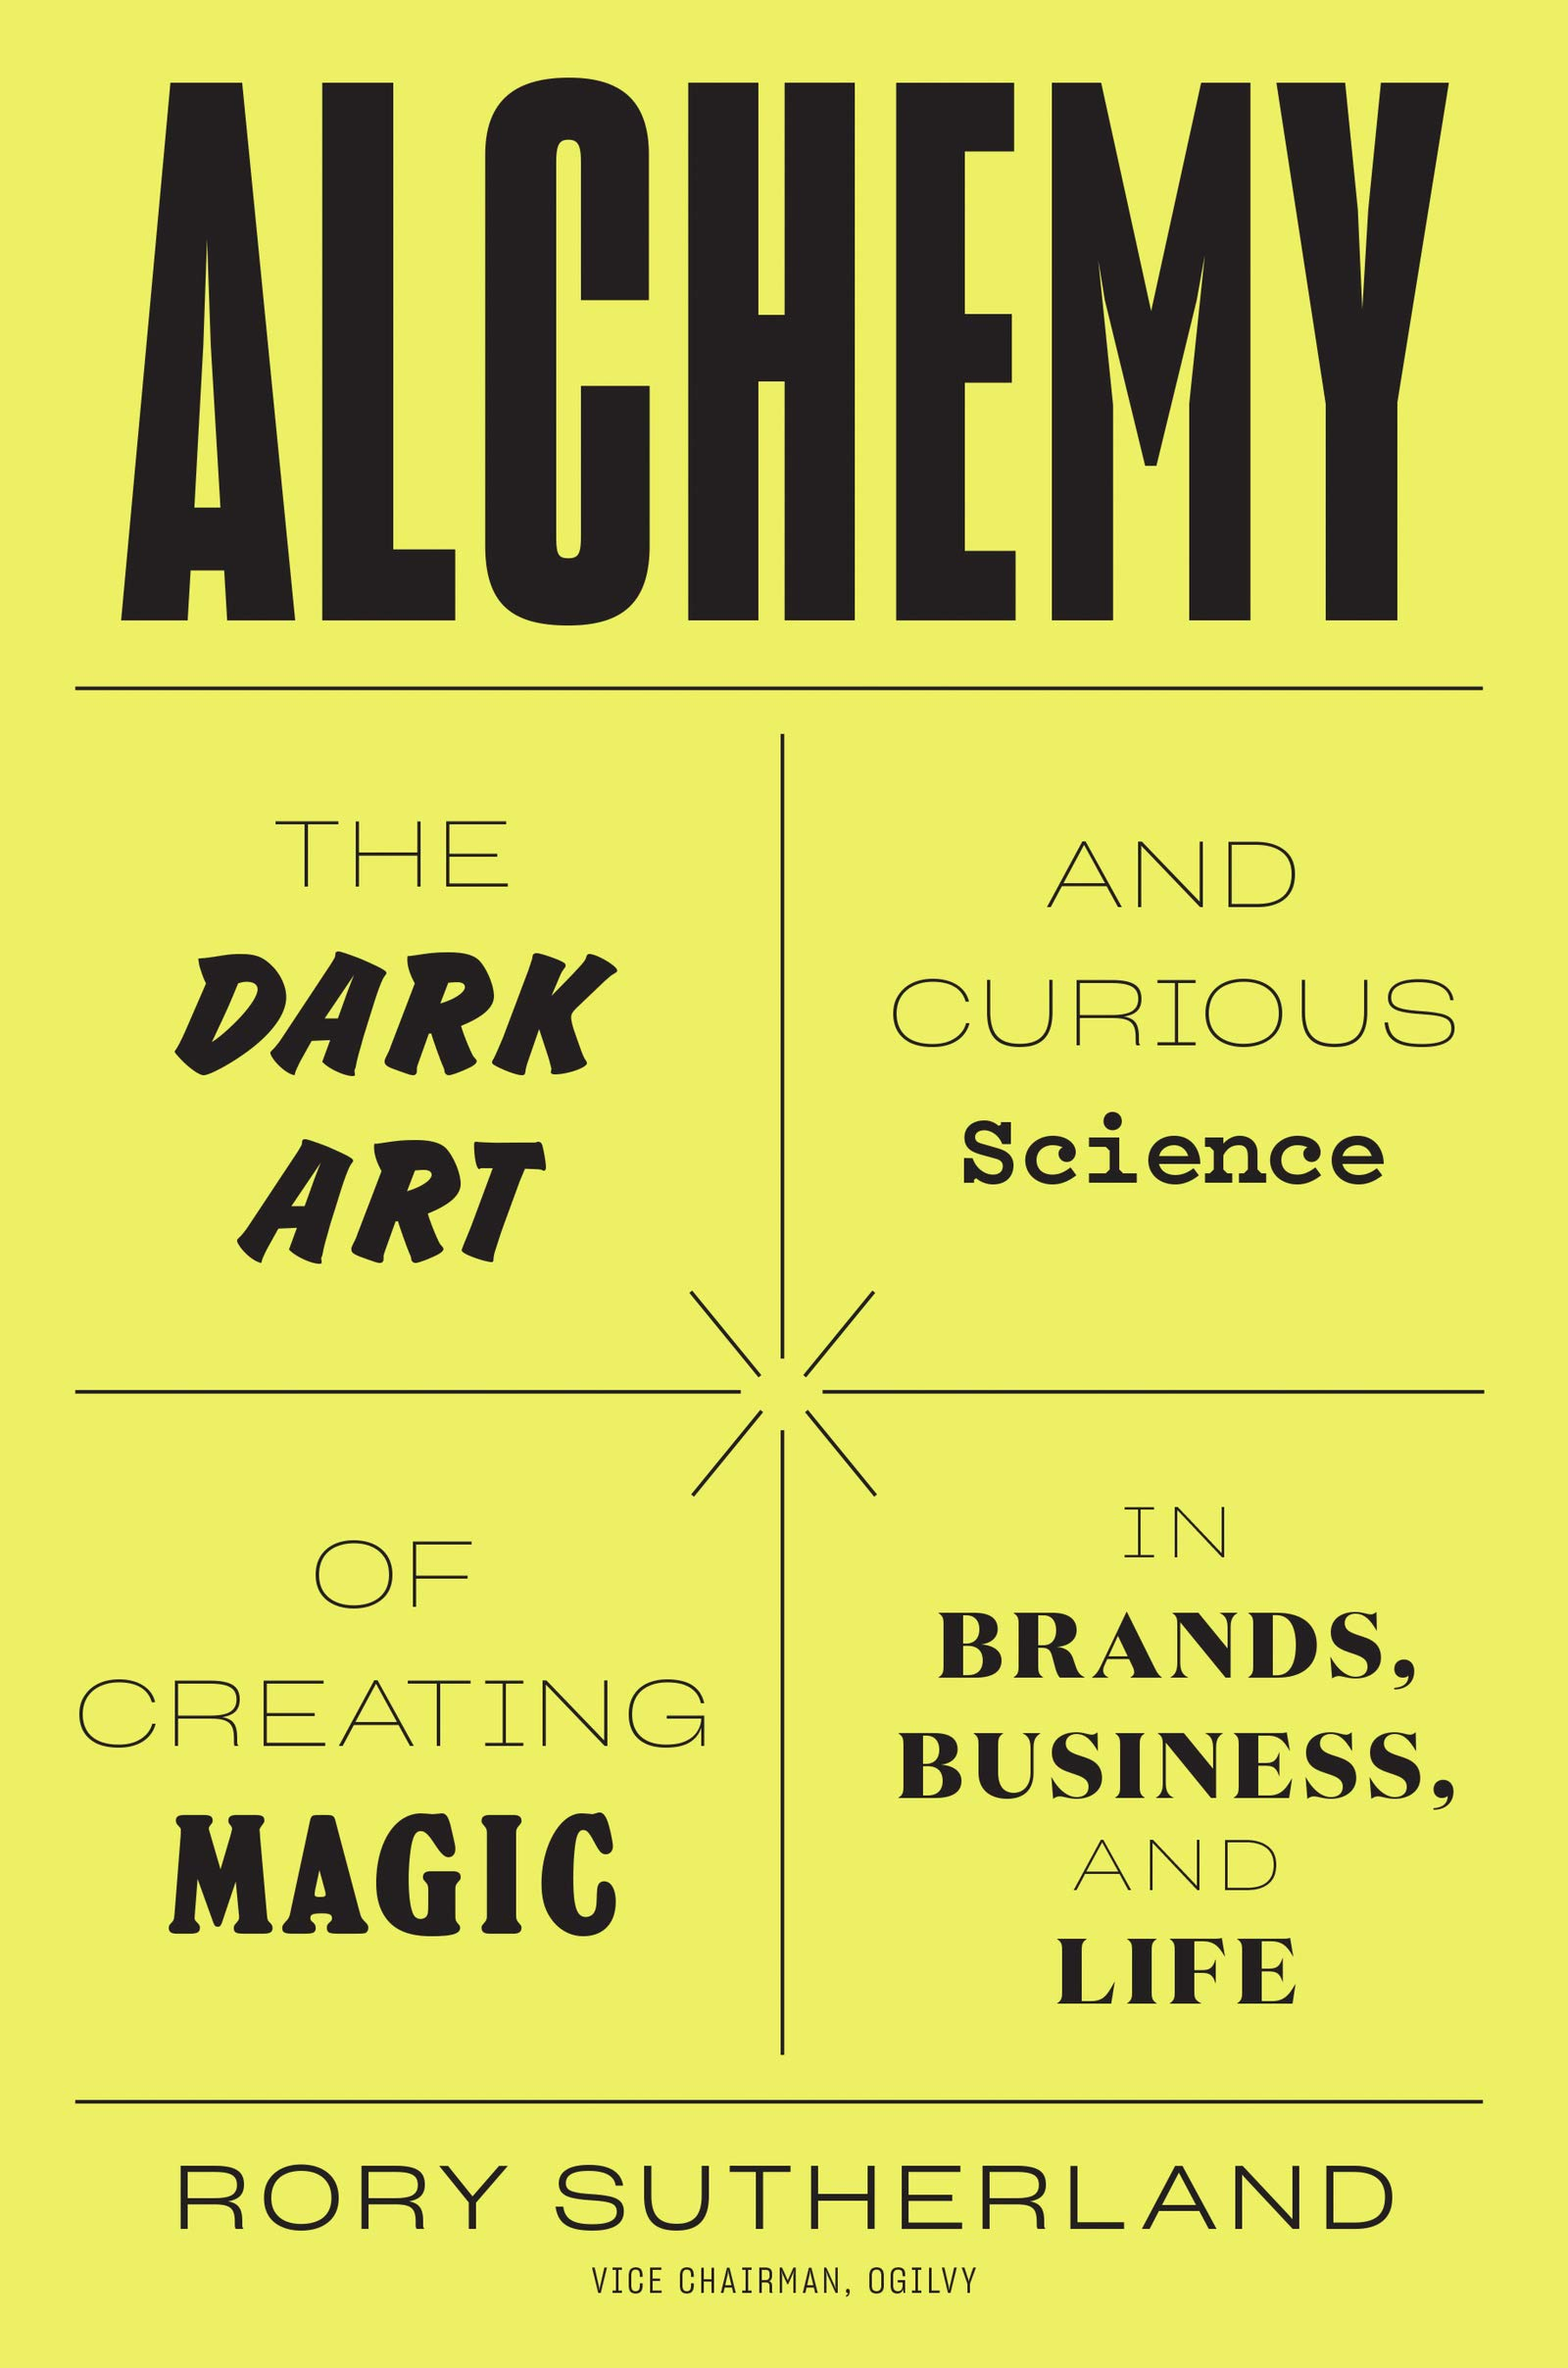 Alchemy: The Dark Art and Curious Science of Creating Magic in Brands, Business, and Life by William Morrow